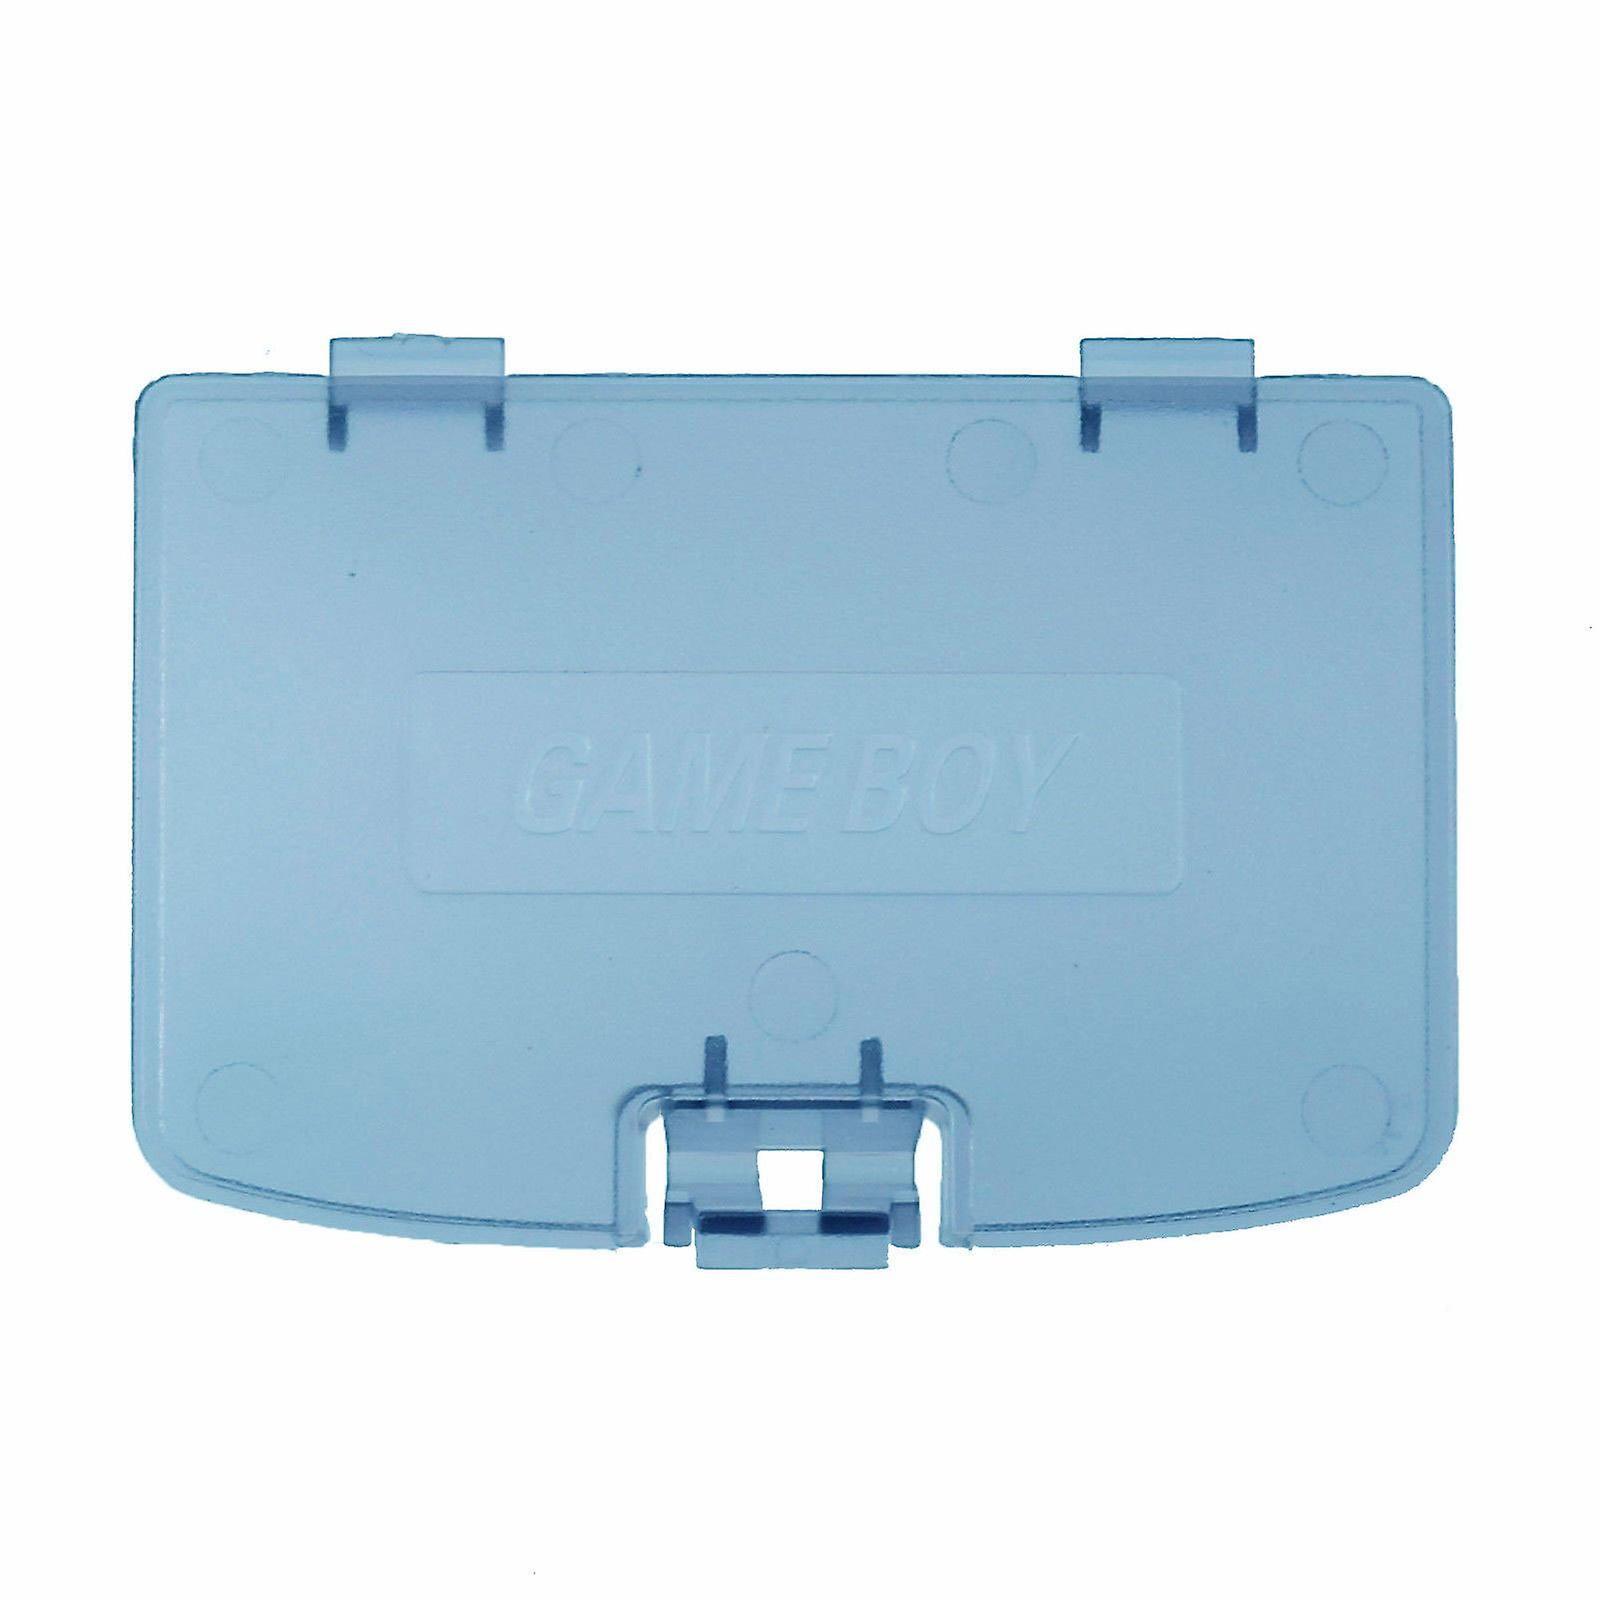 Replacement battery cover door for nintendo game boy color - clear blue